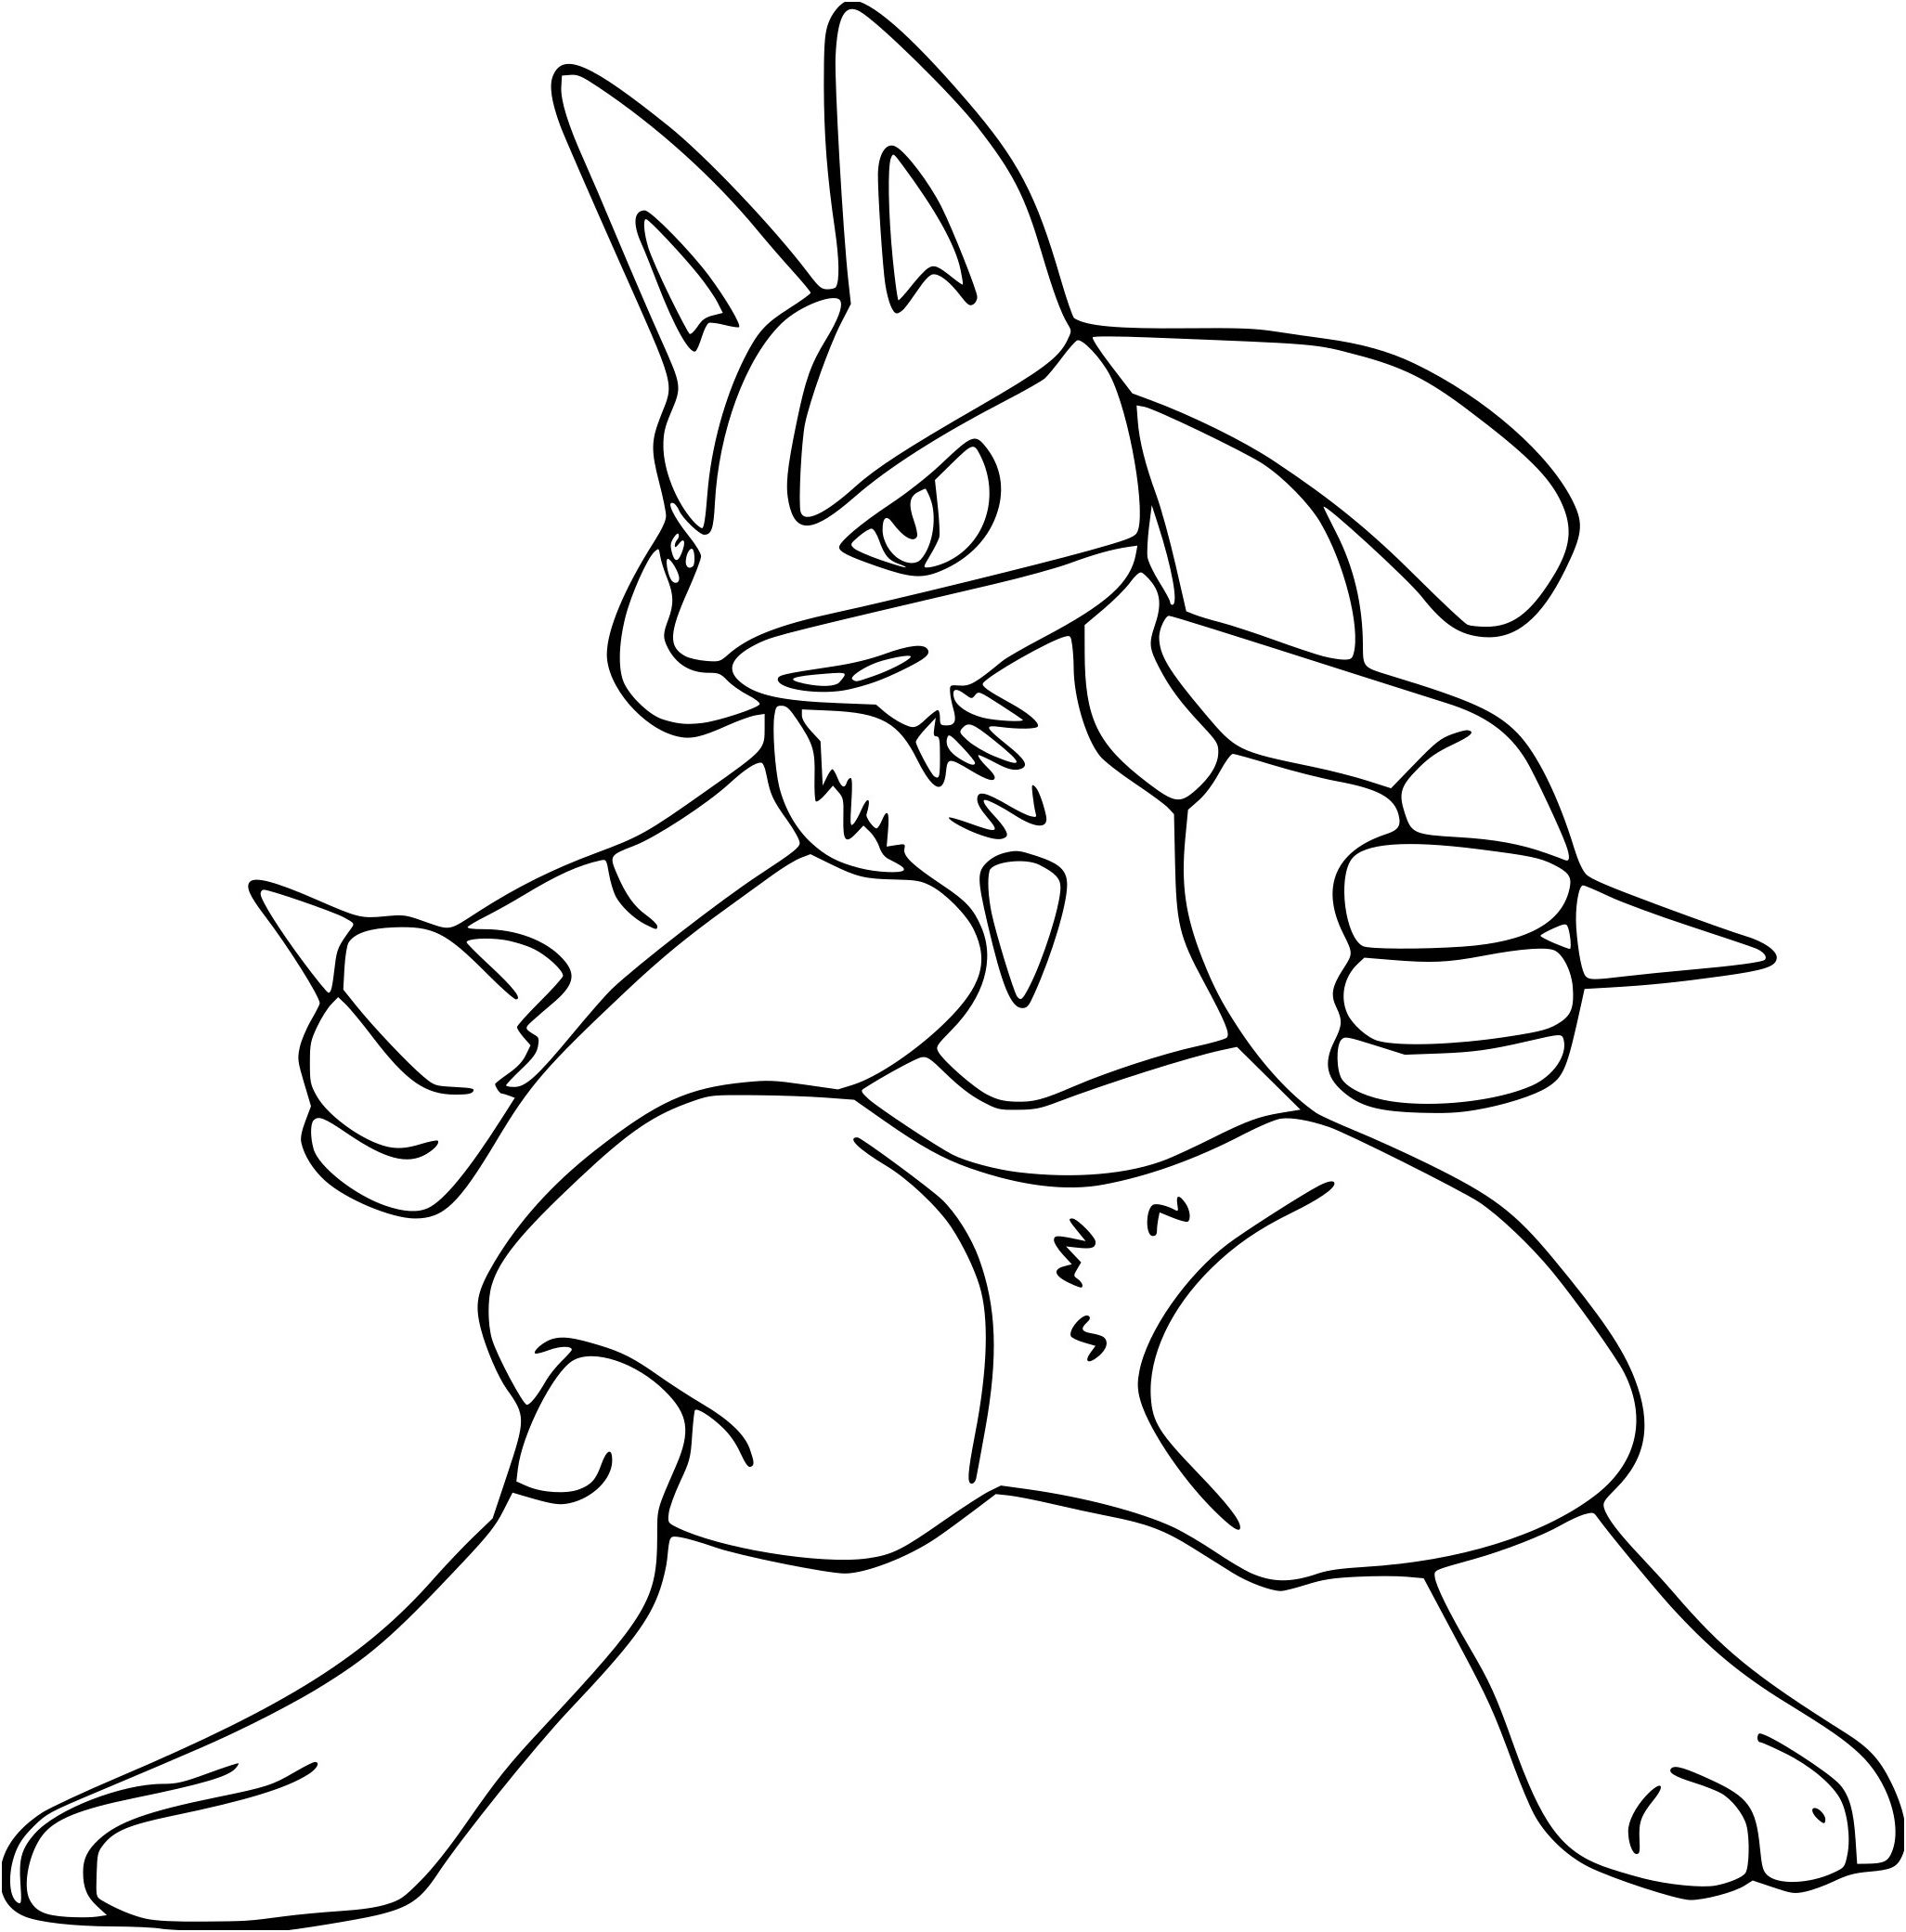 14 Ordinaire Coloriage Pokemon Lucario Stock Coloriage Pokemon